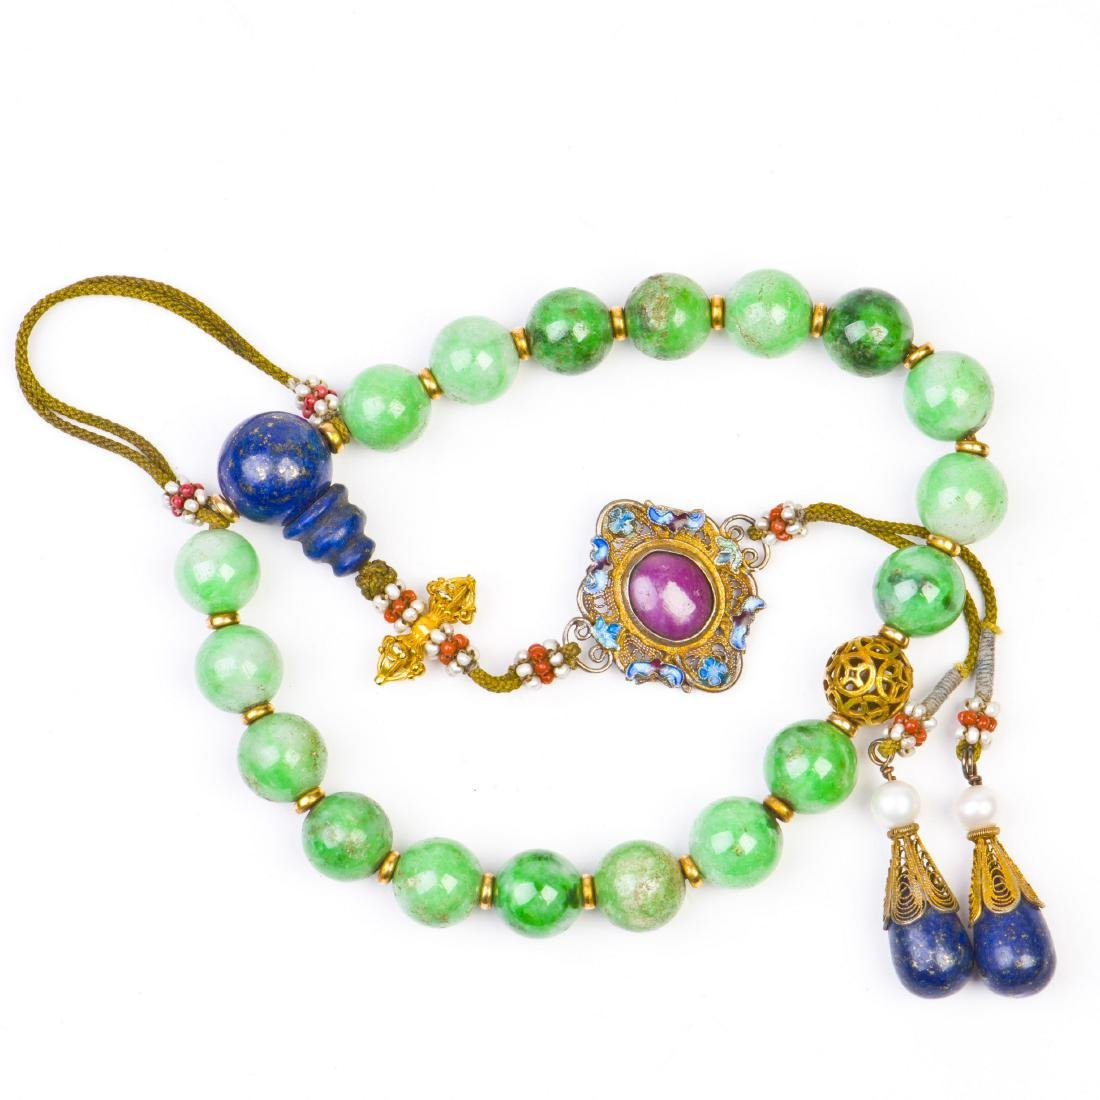 Jadeite Prayer Beads Strand